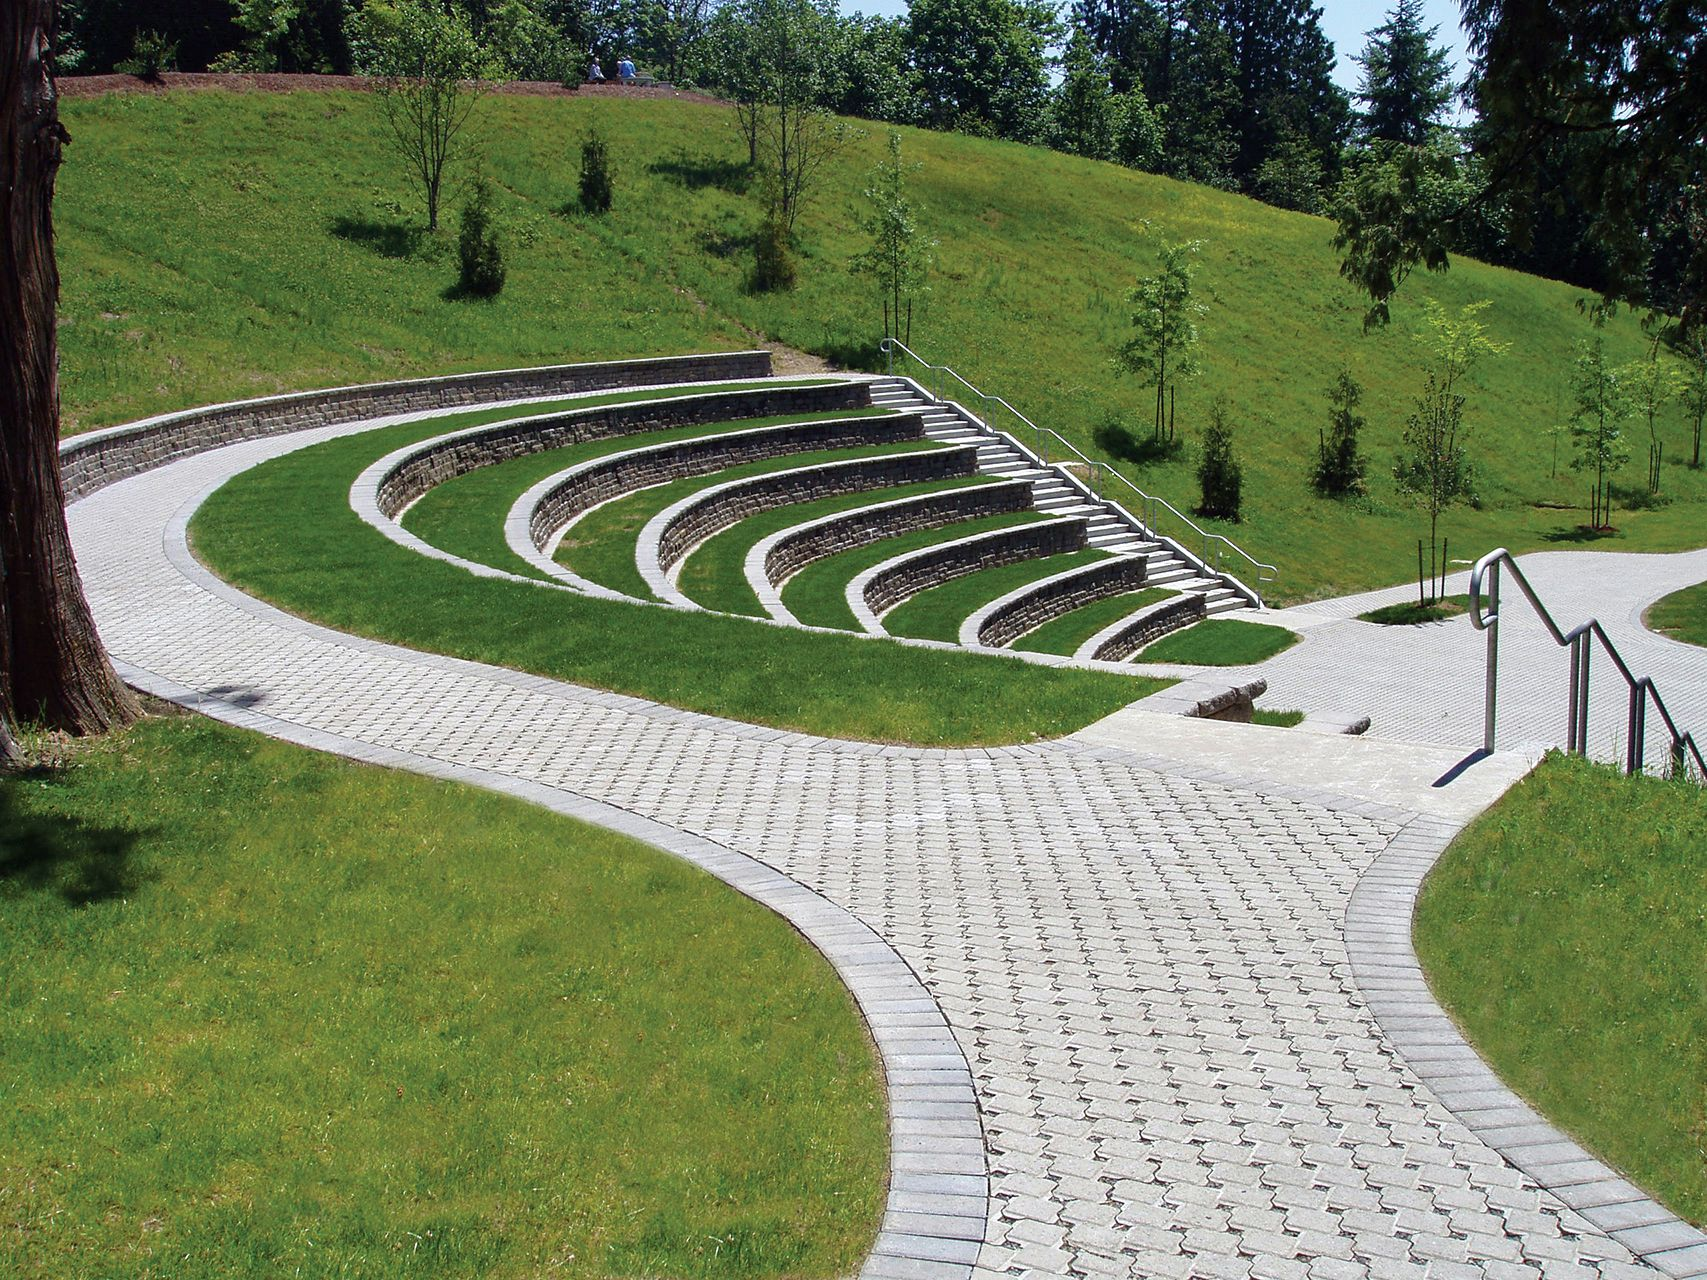 Ecoloc permeable pavers available at is part of architecture - Ecoloc permeable pavers from Mutual Materials, are used throughout the Lewis River recreational area to pave walkways around wetlands and an amphitheater